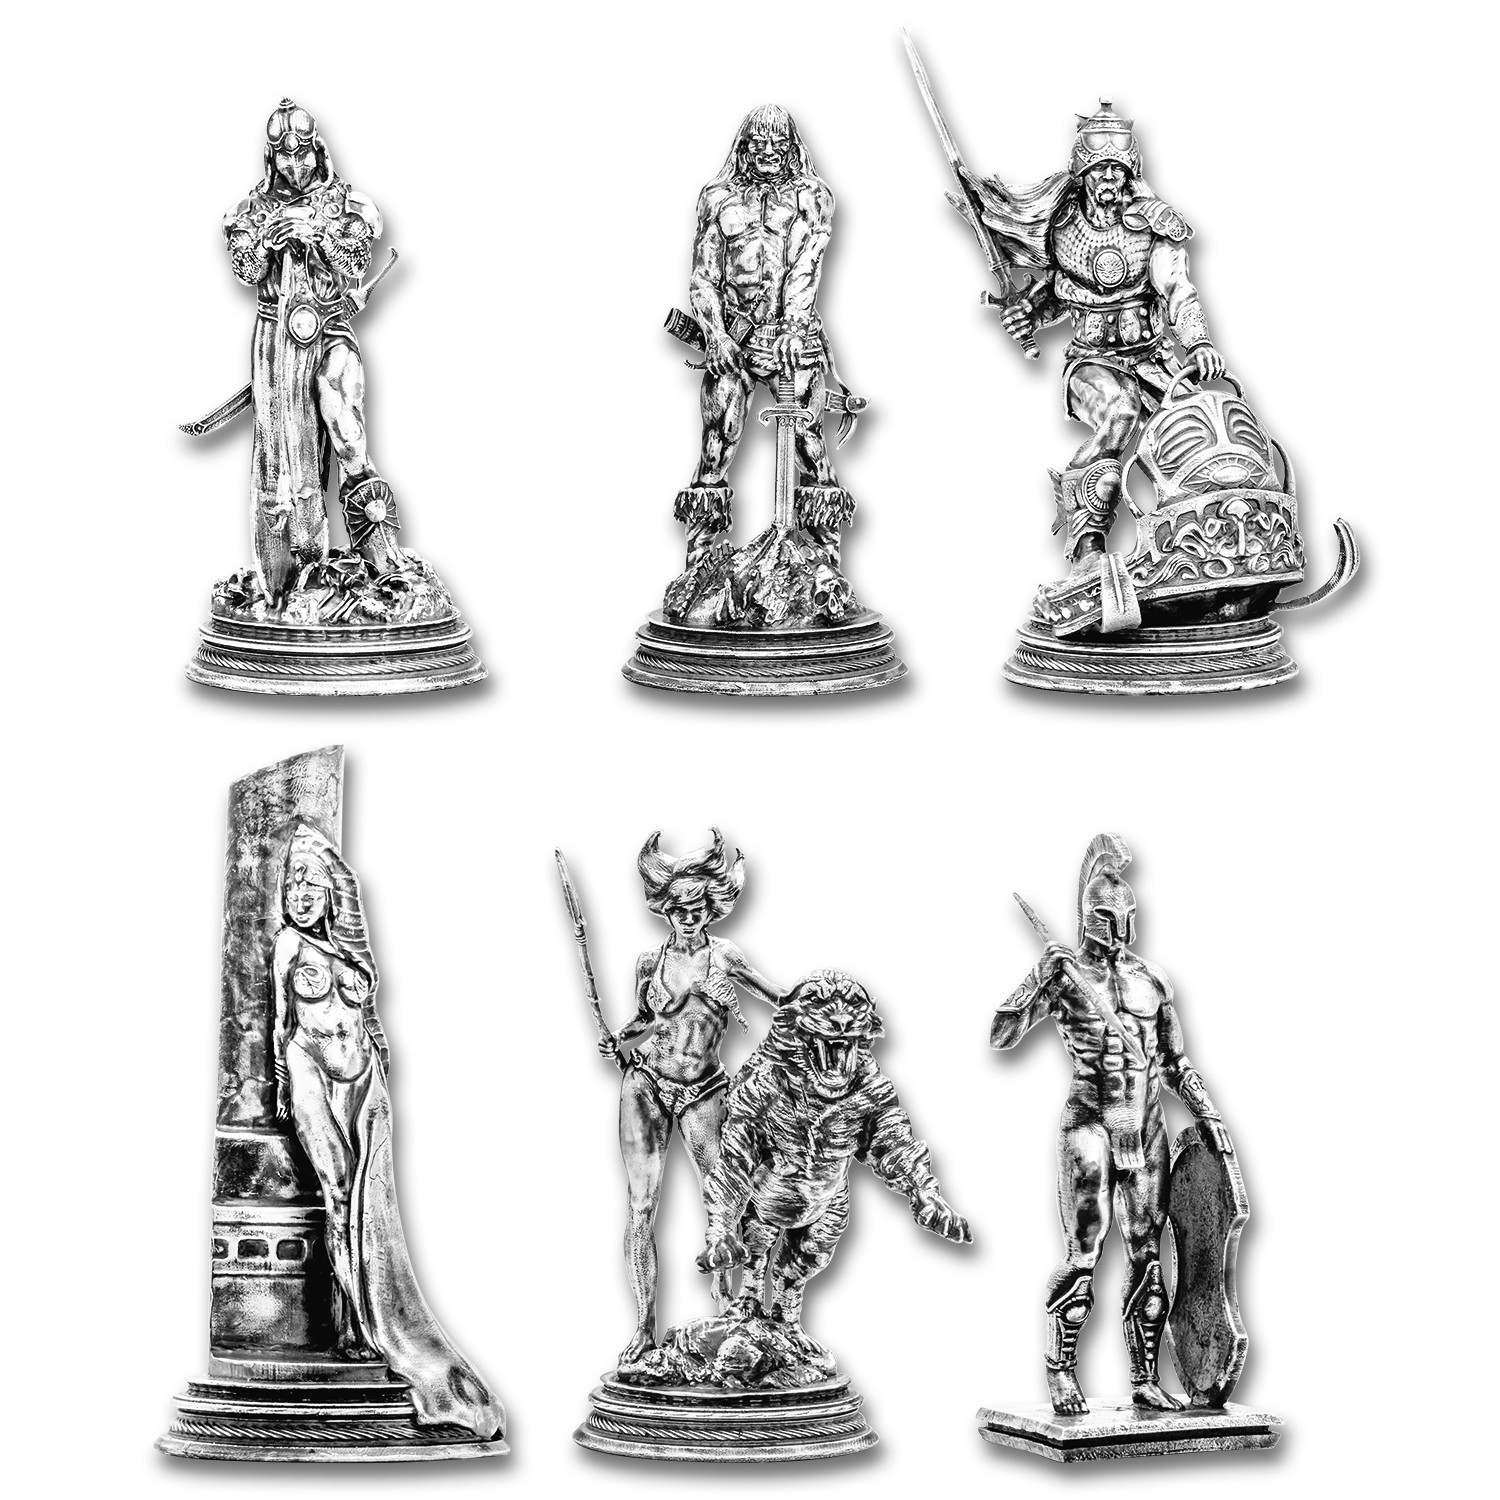 Silver Antique Statue - Frank Frazetta Collection (6-Piece Set)